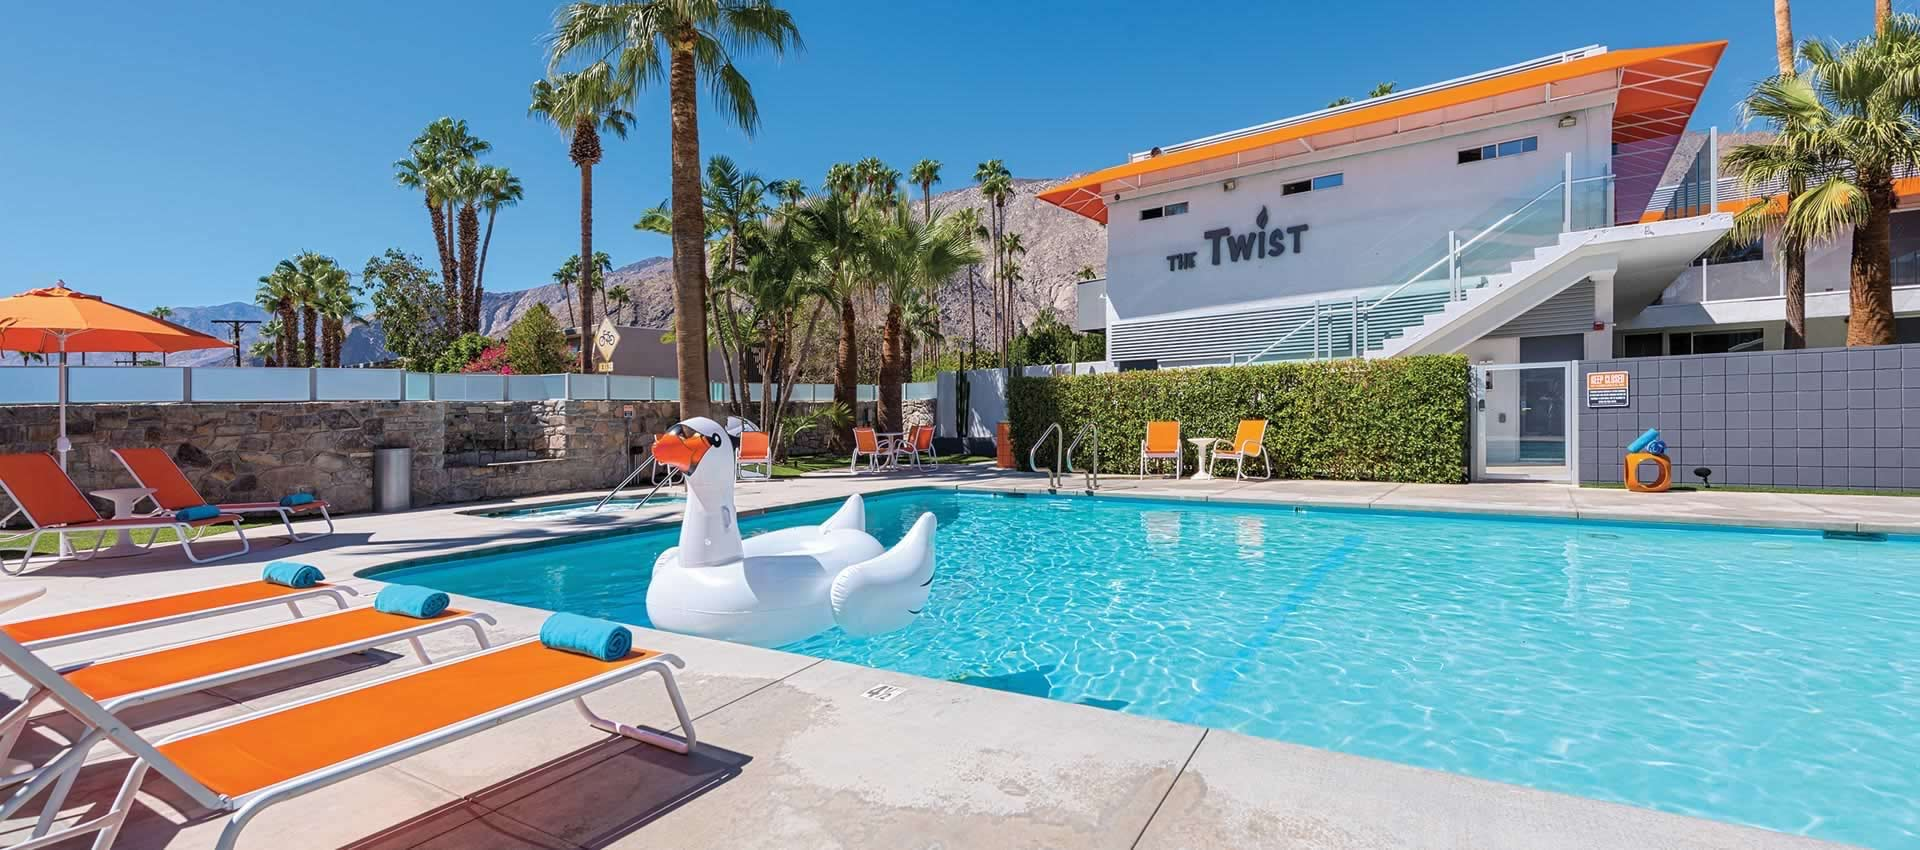 The Twist Palm Springs